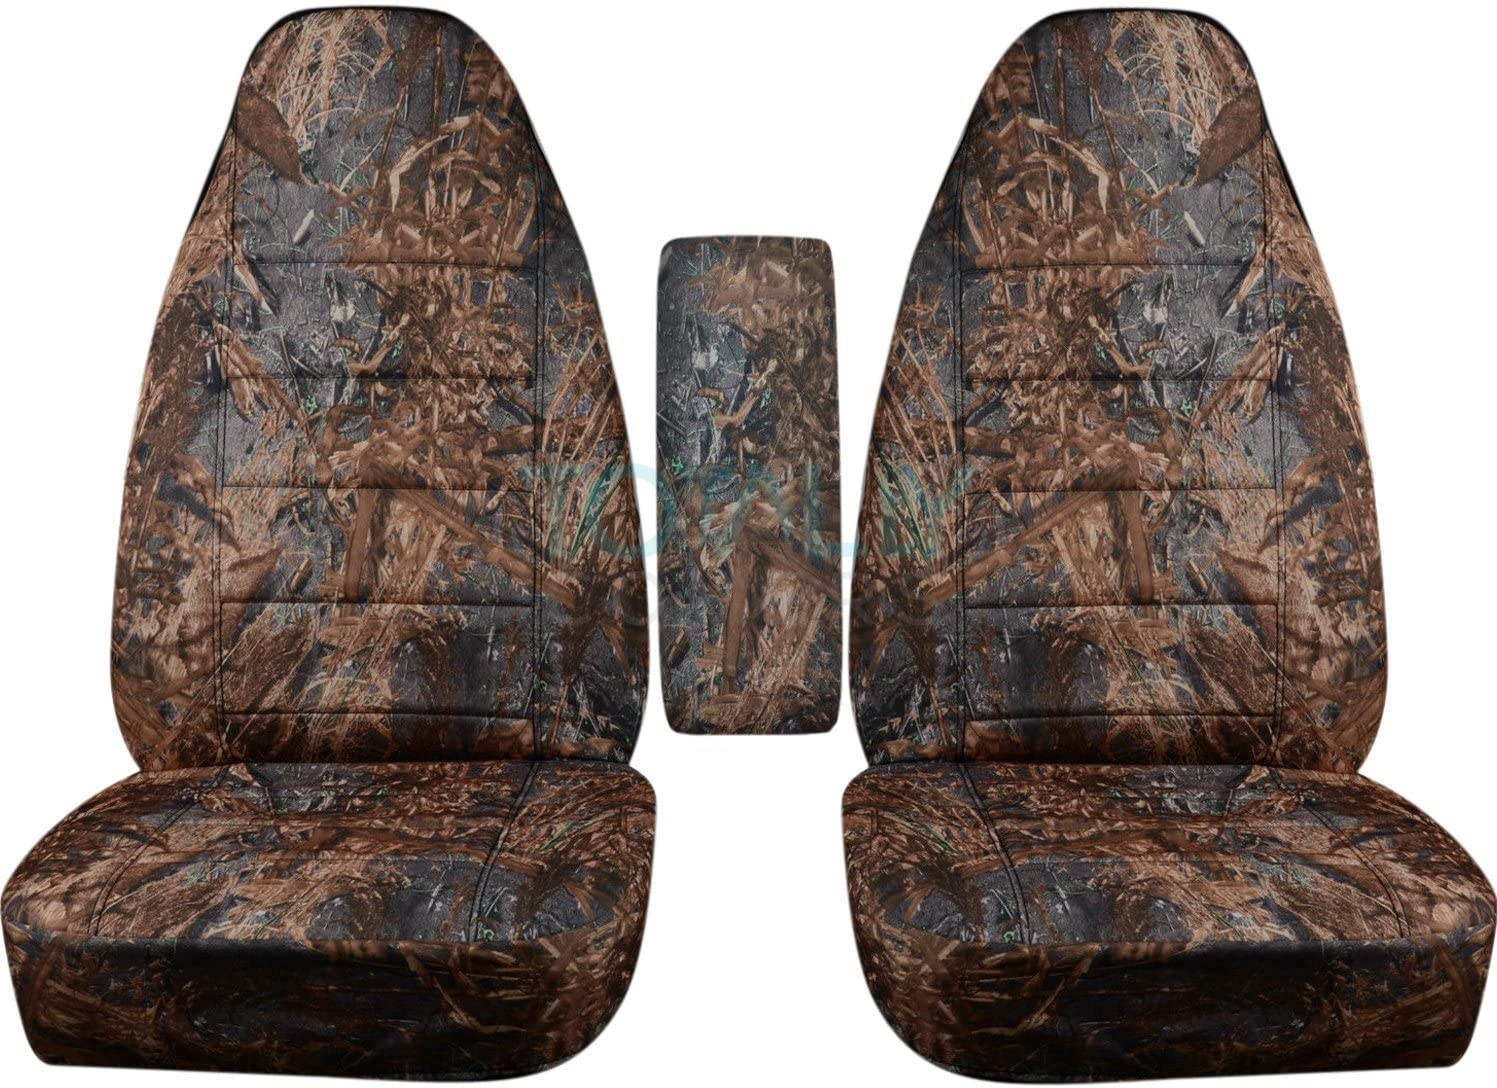 Totally Covers Compatible with 1991-1997 Ford Ranger/Explorer/Explorer Sport & Mazda Navajo/B-Series Camo Truck/SUV Bucket Seat Covers w Center Armrest Cover: Reeds Camouflage